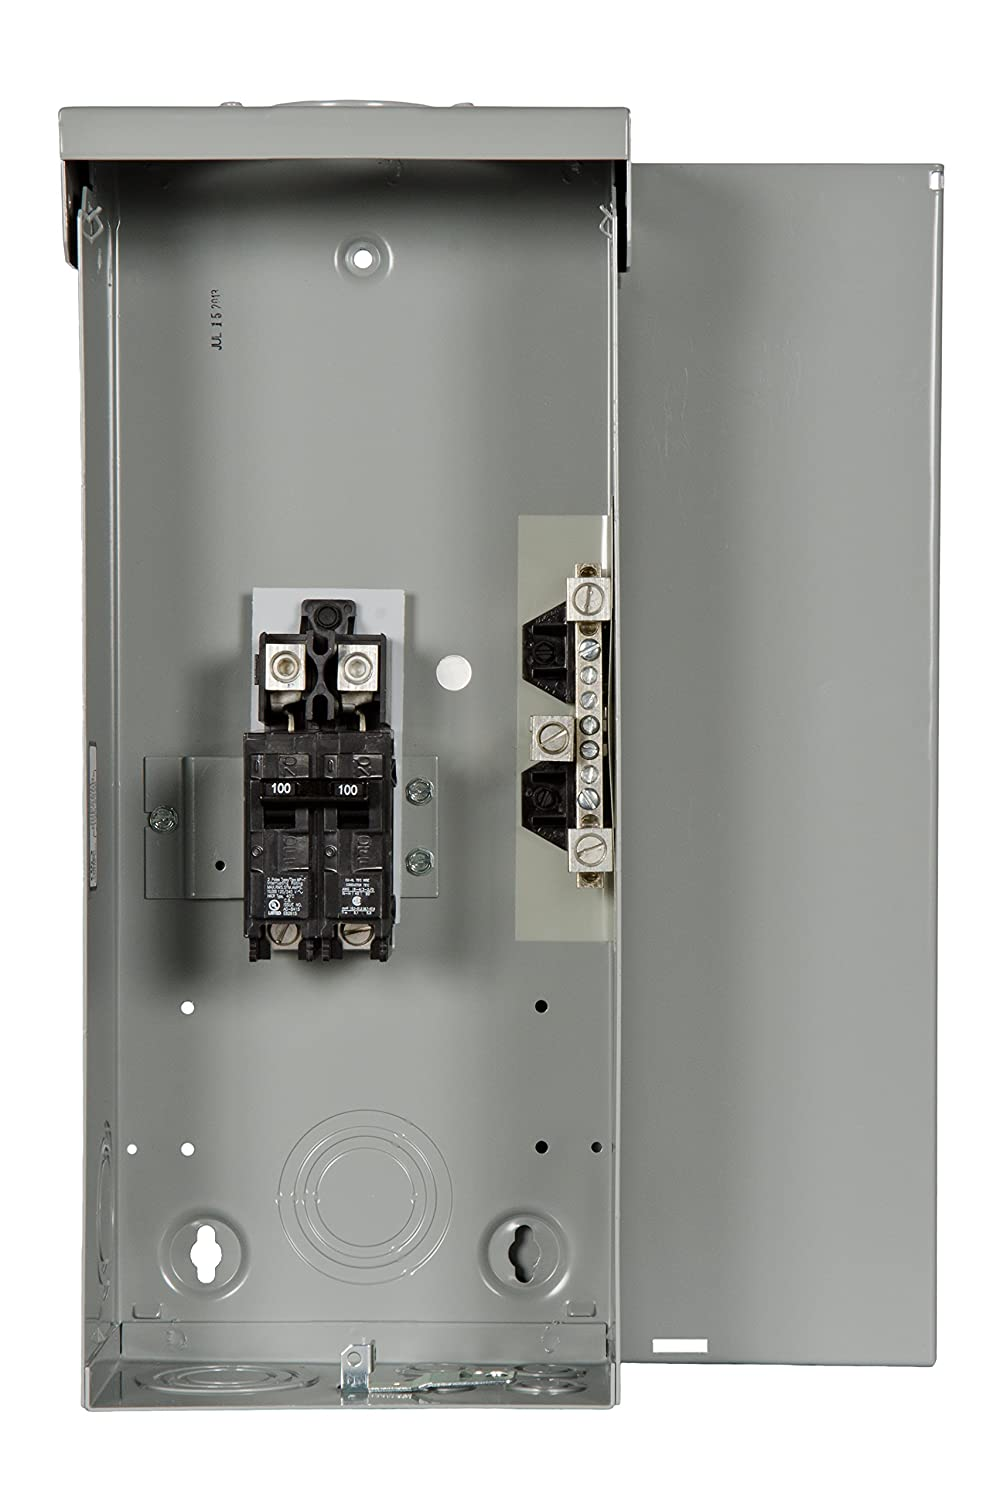 Siemens W0204ML1060U 60 Amp Outdoor Circuit Breaker Enclosure - Breaker Box  With Breakers - Amazon.com